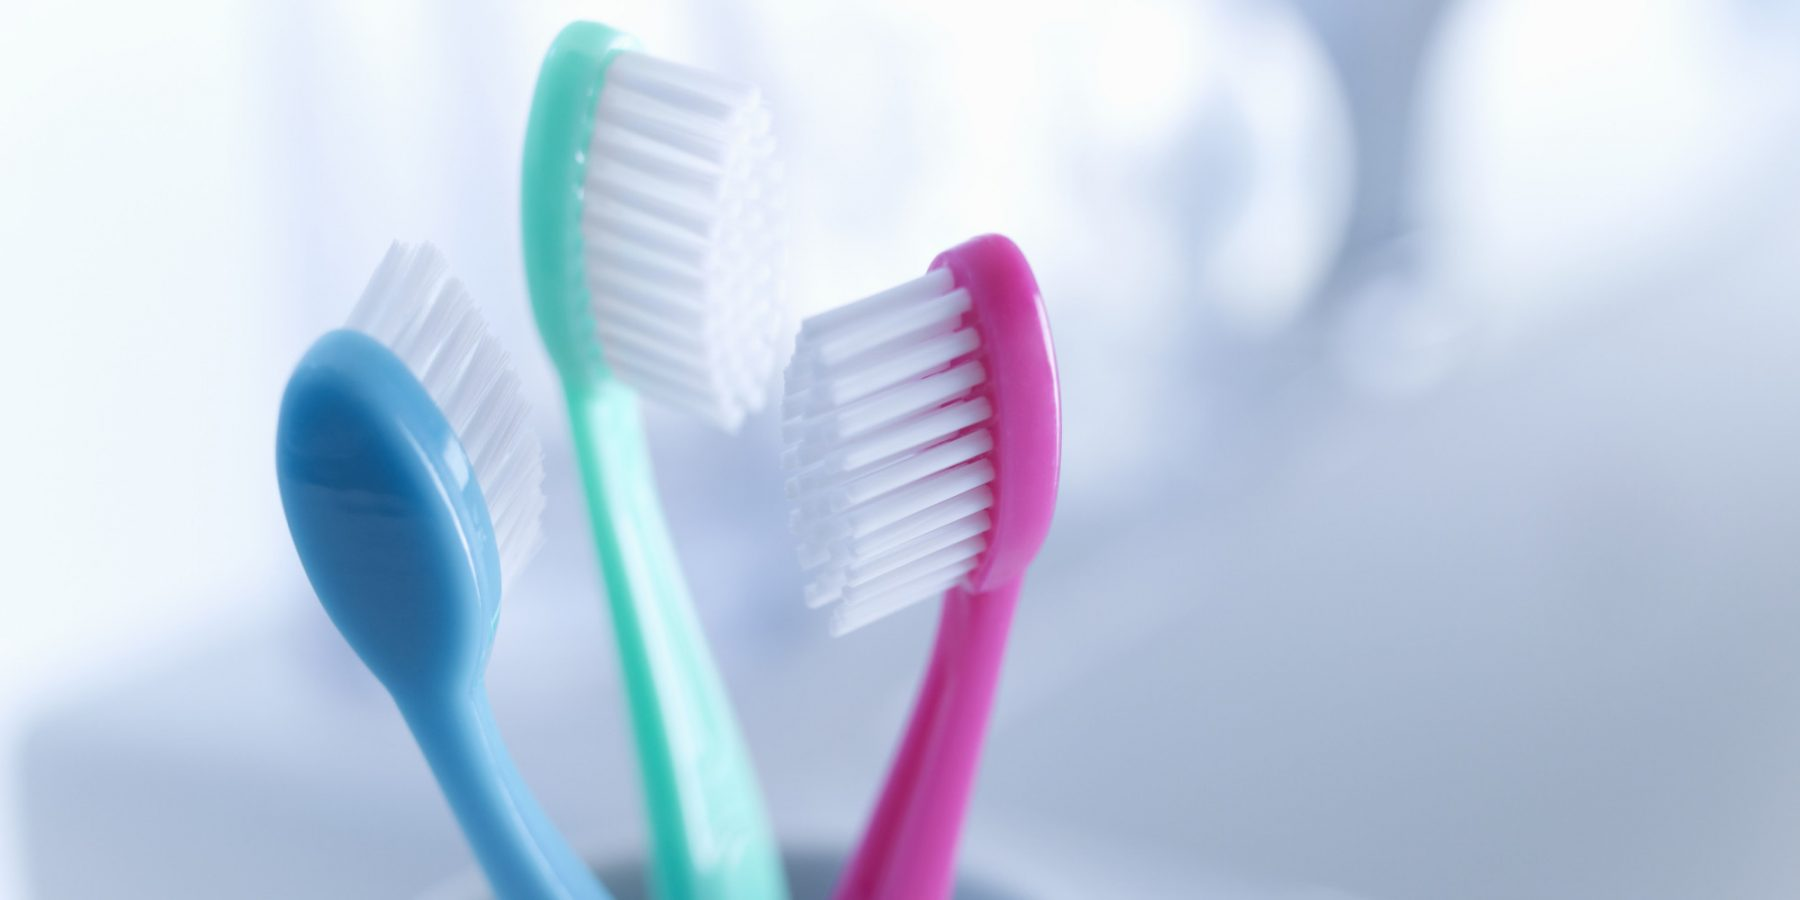 Close up of toothbrushes in holder